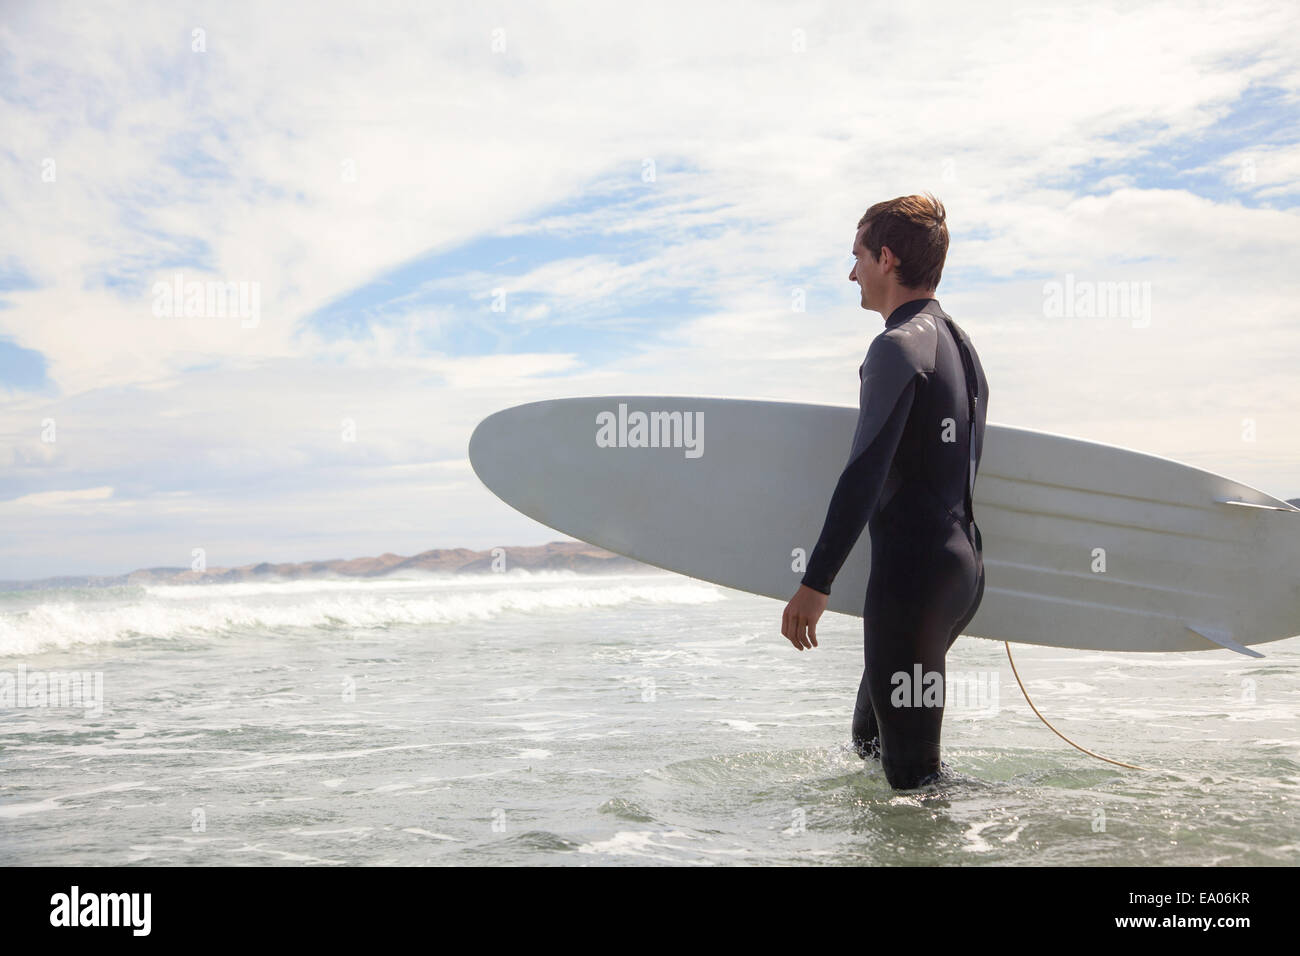 Young man carrying surfboard, walking out to sea - Stock Image